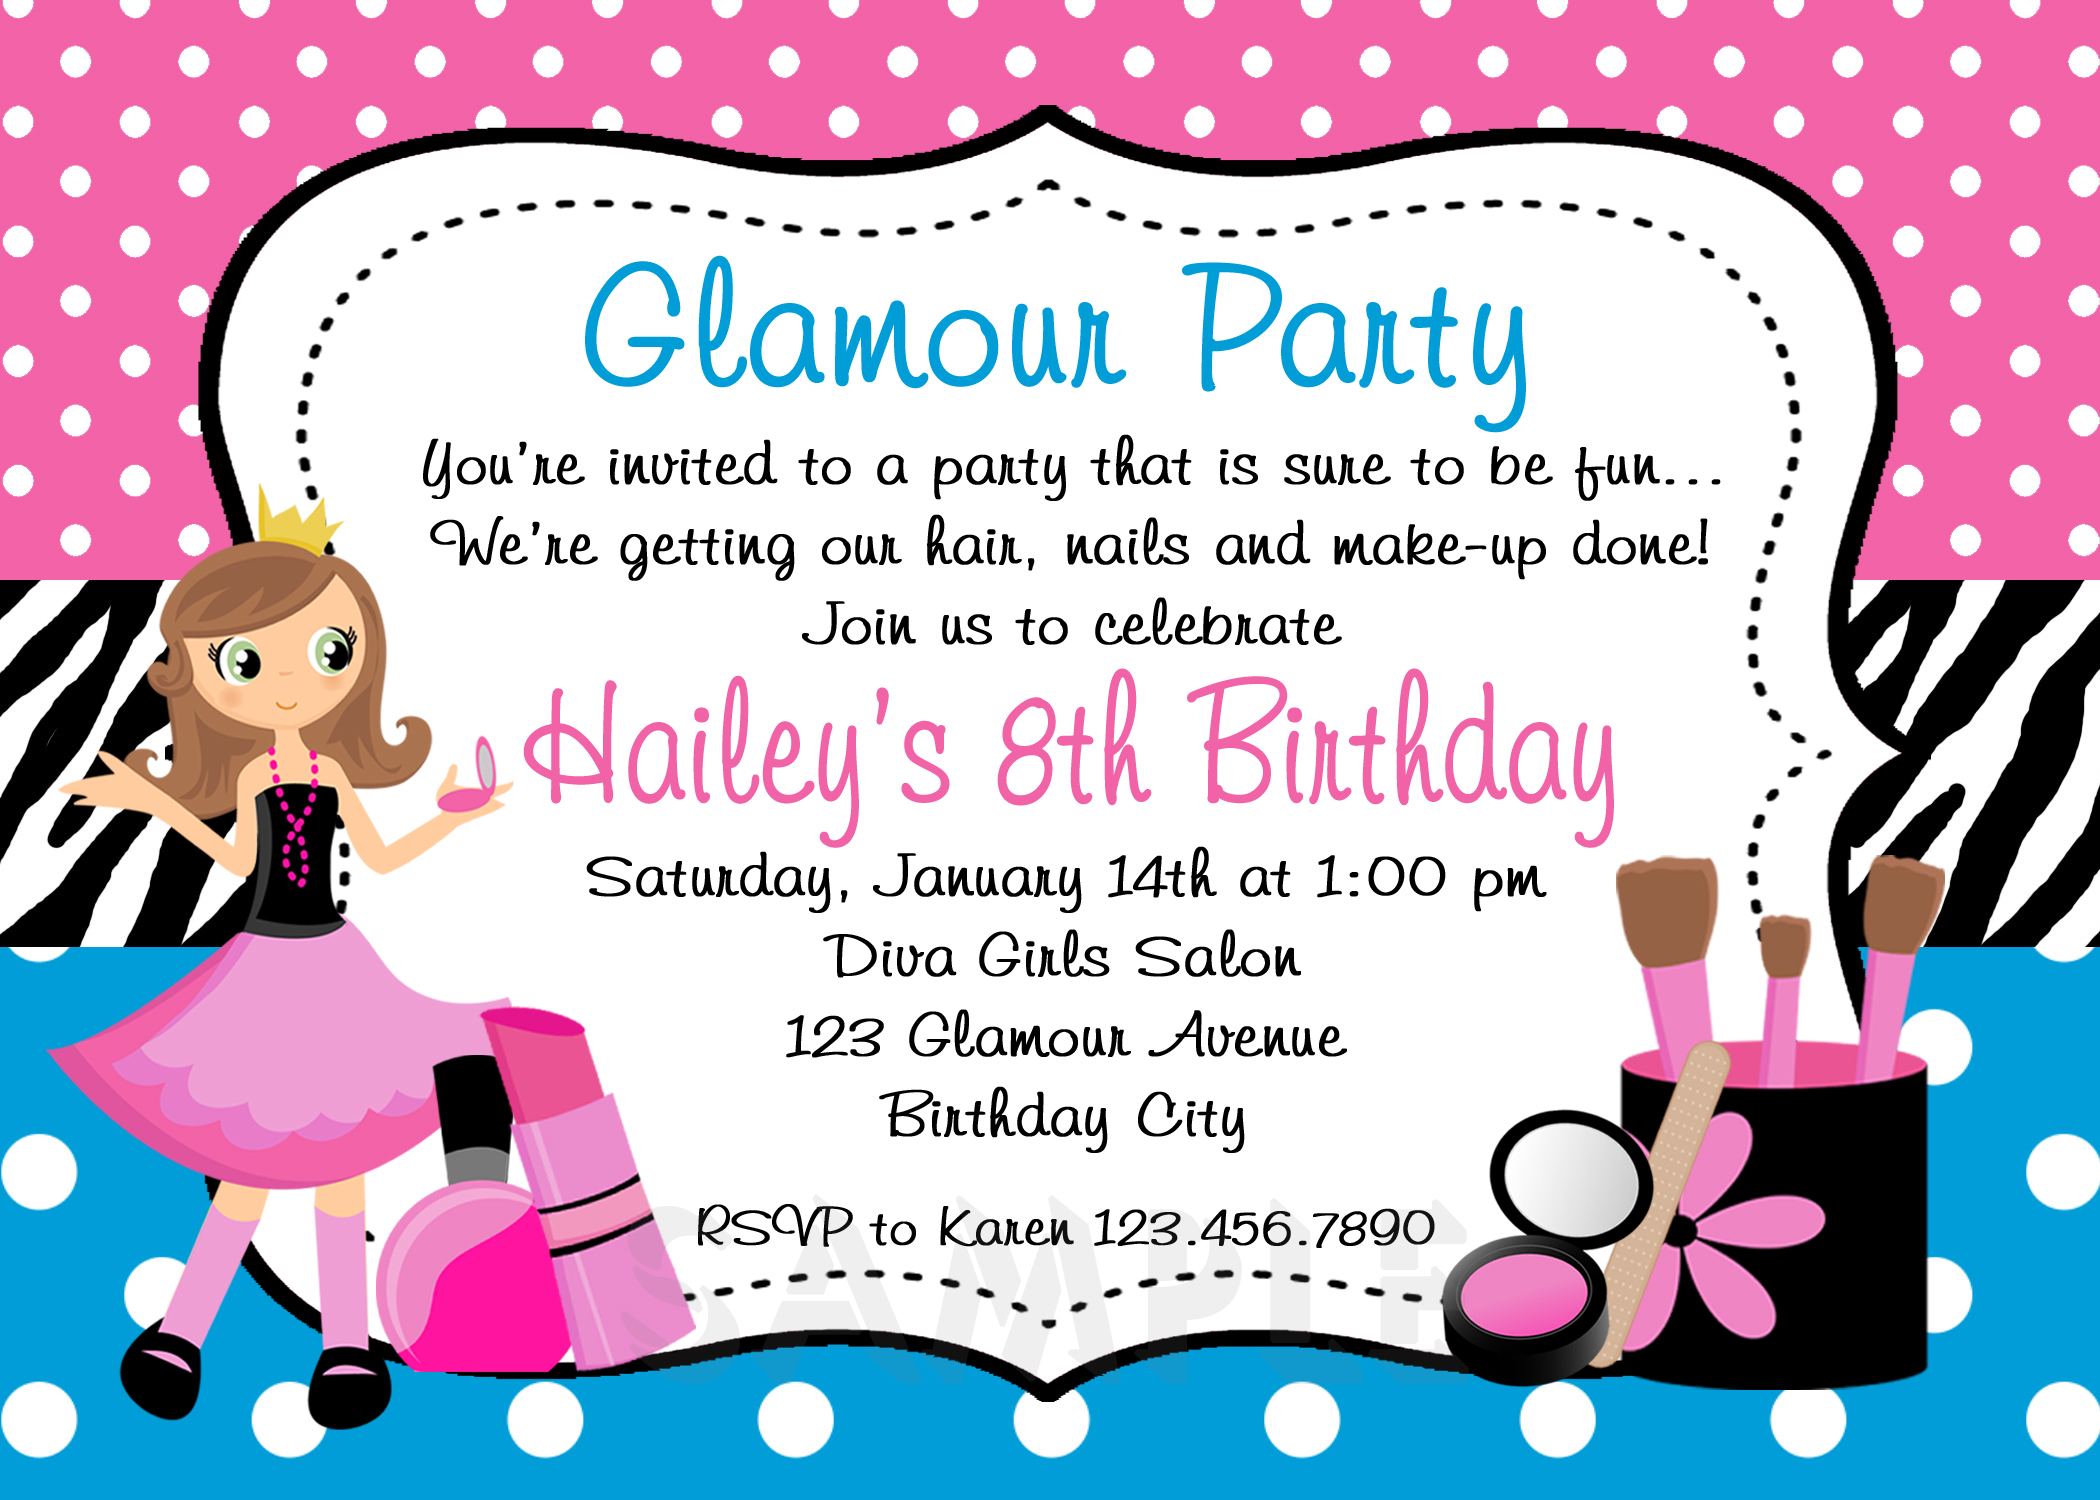 Printable birthday invitations girls glamor beauty party girls printable birthday invites filmwisefo